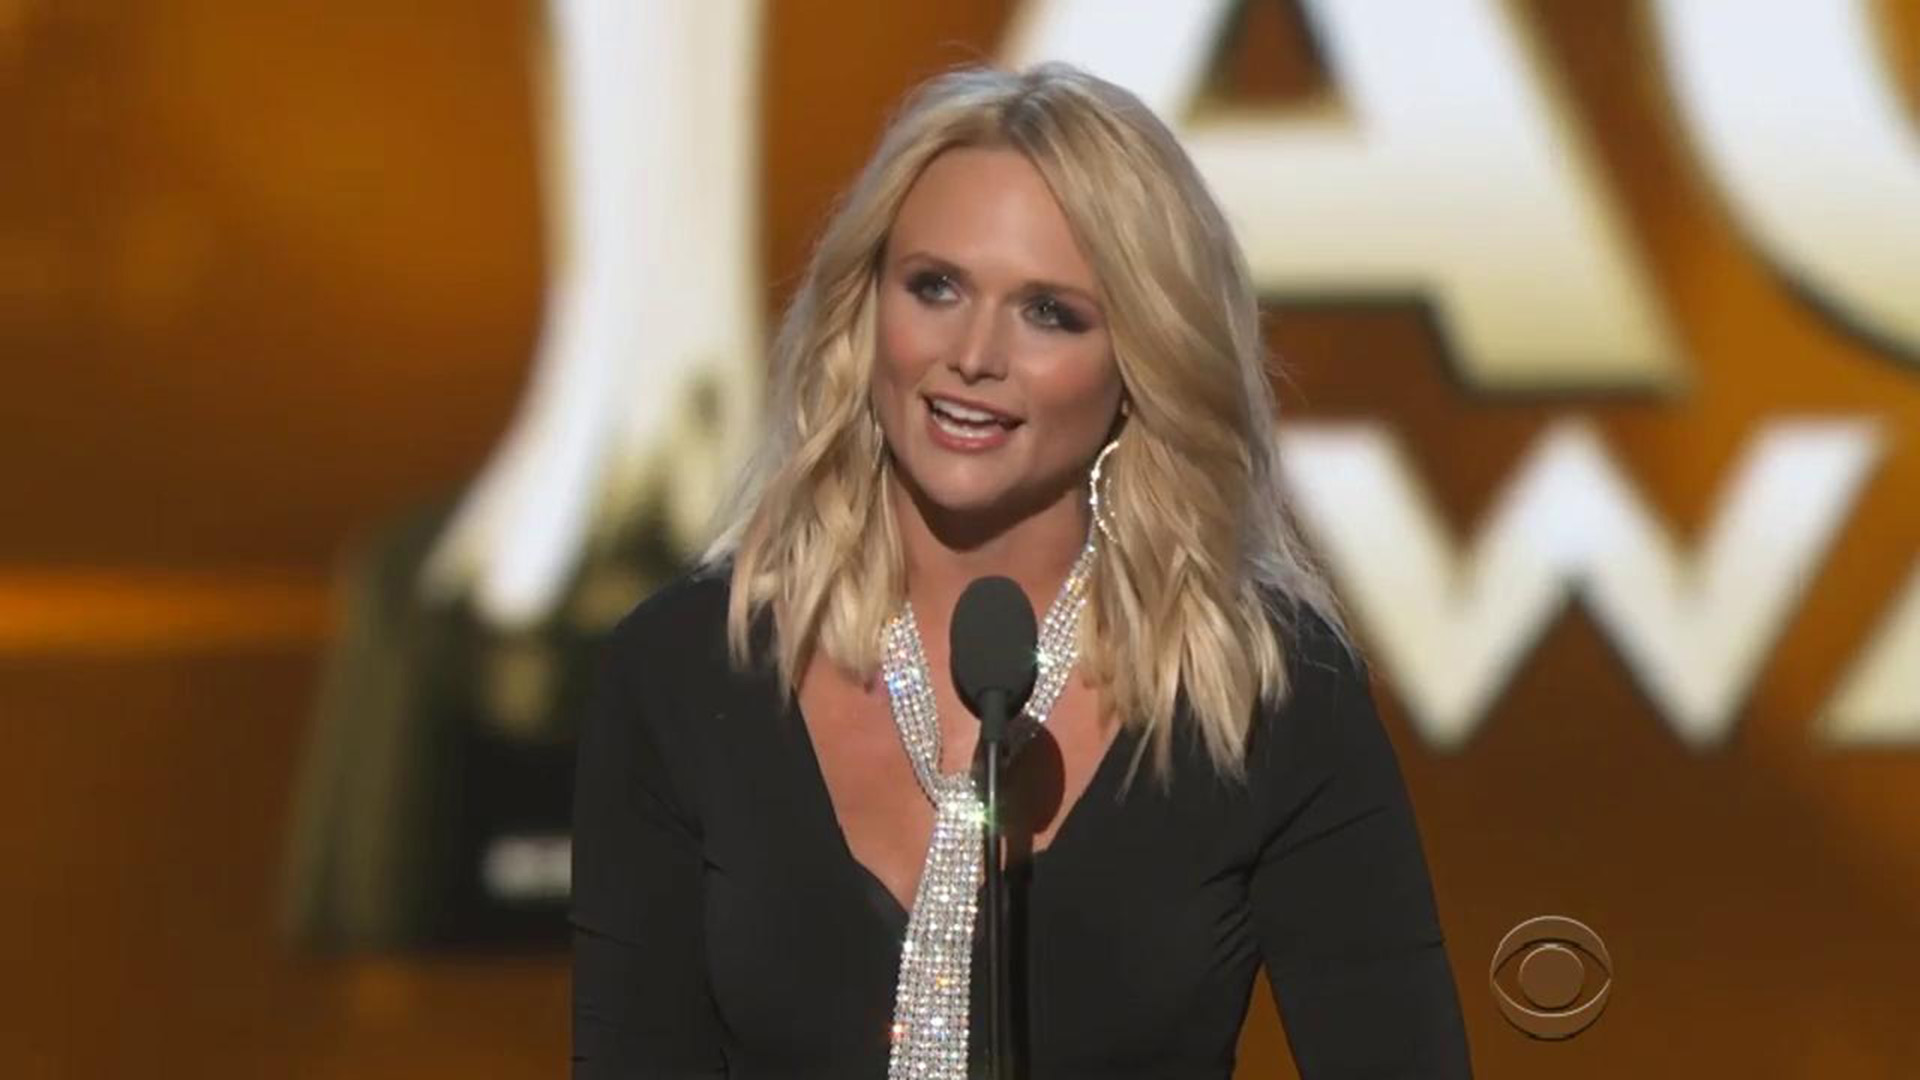 Miranda Lambert: Female Vocalist Of The Year